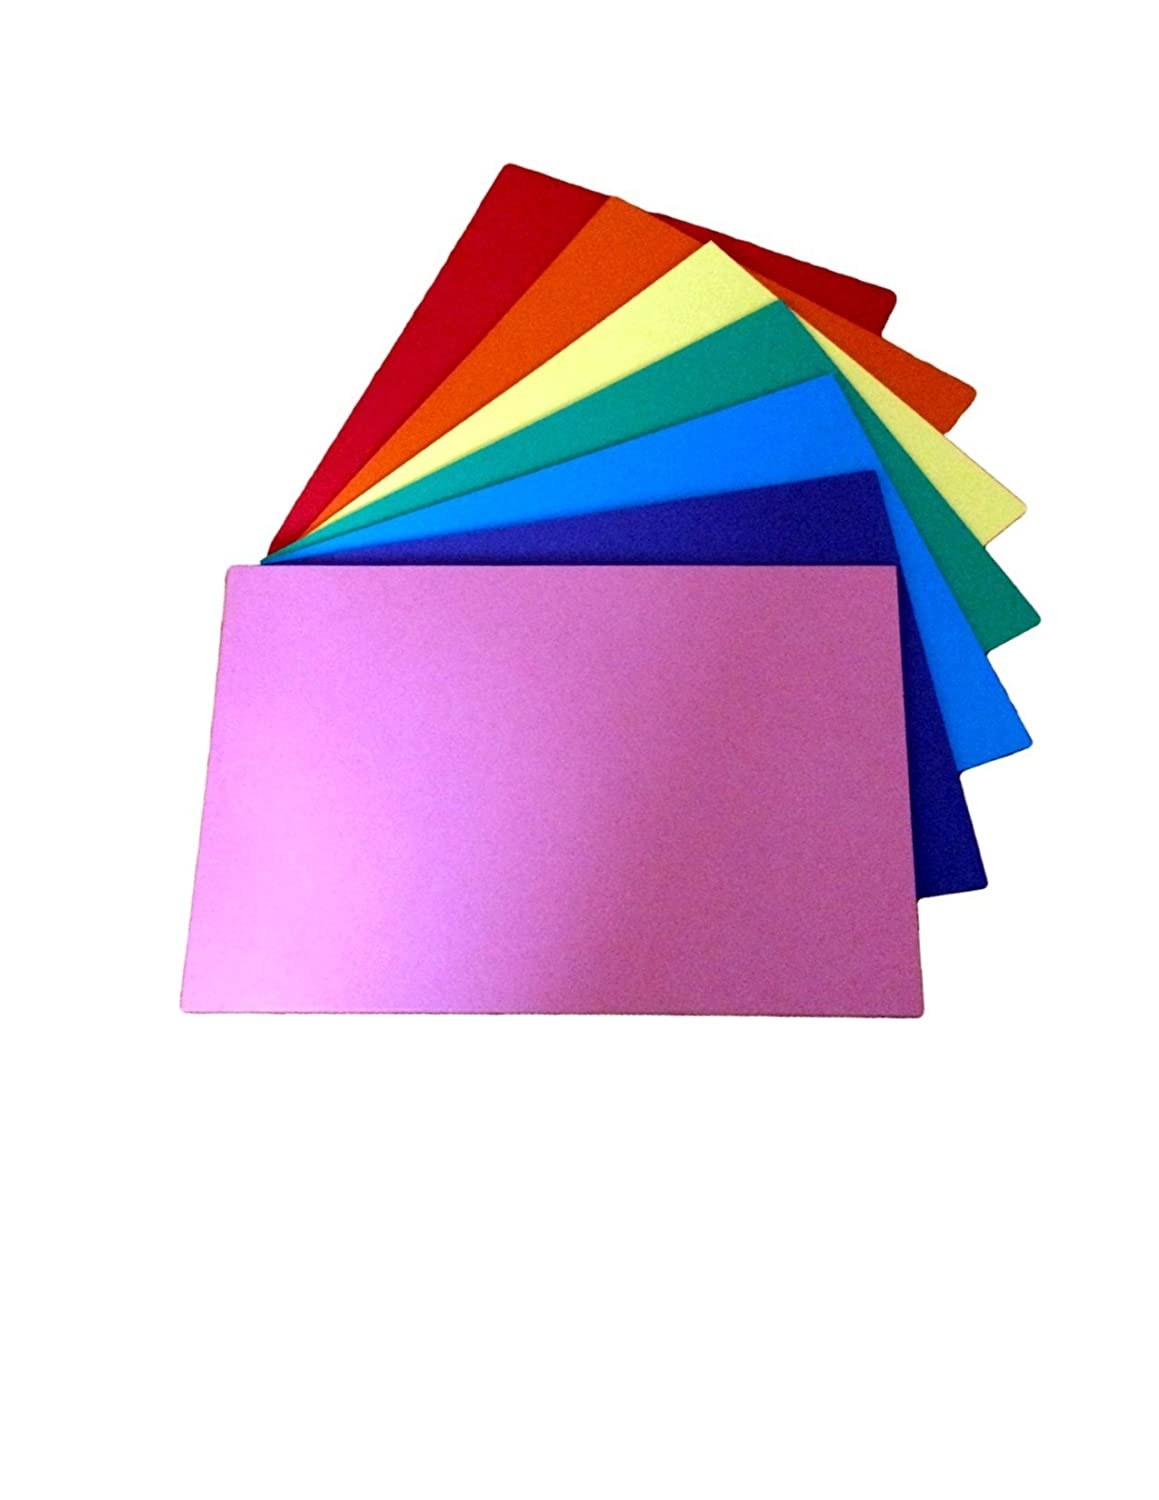 House of Card and Paper Rainbow A4 160 GSM Coloured Card Pack of 50